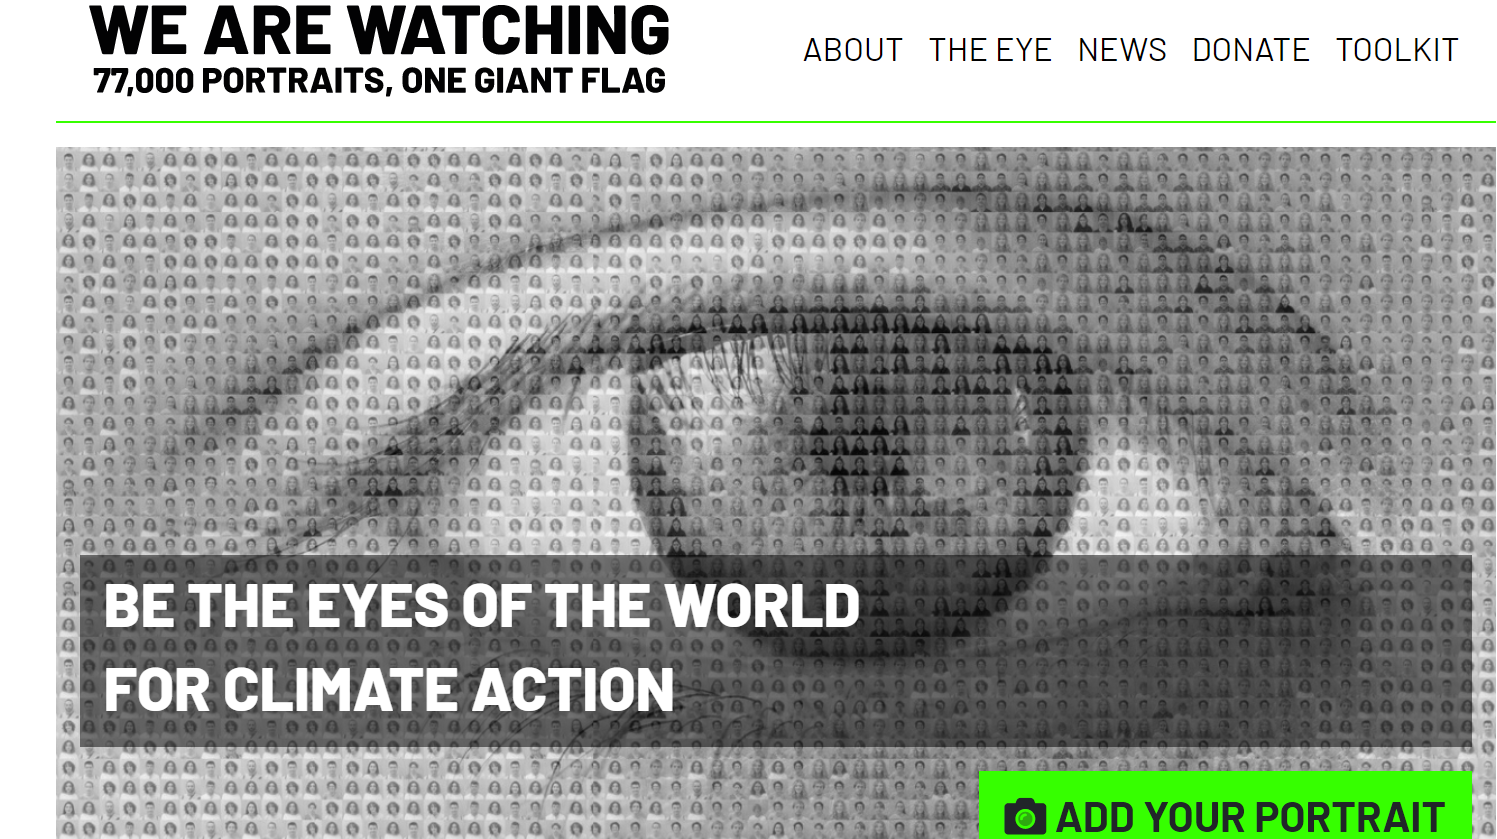 home page du site wearewatching.org